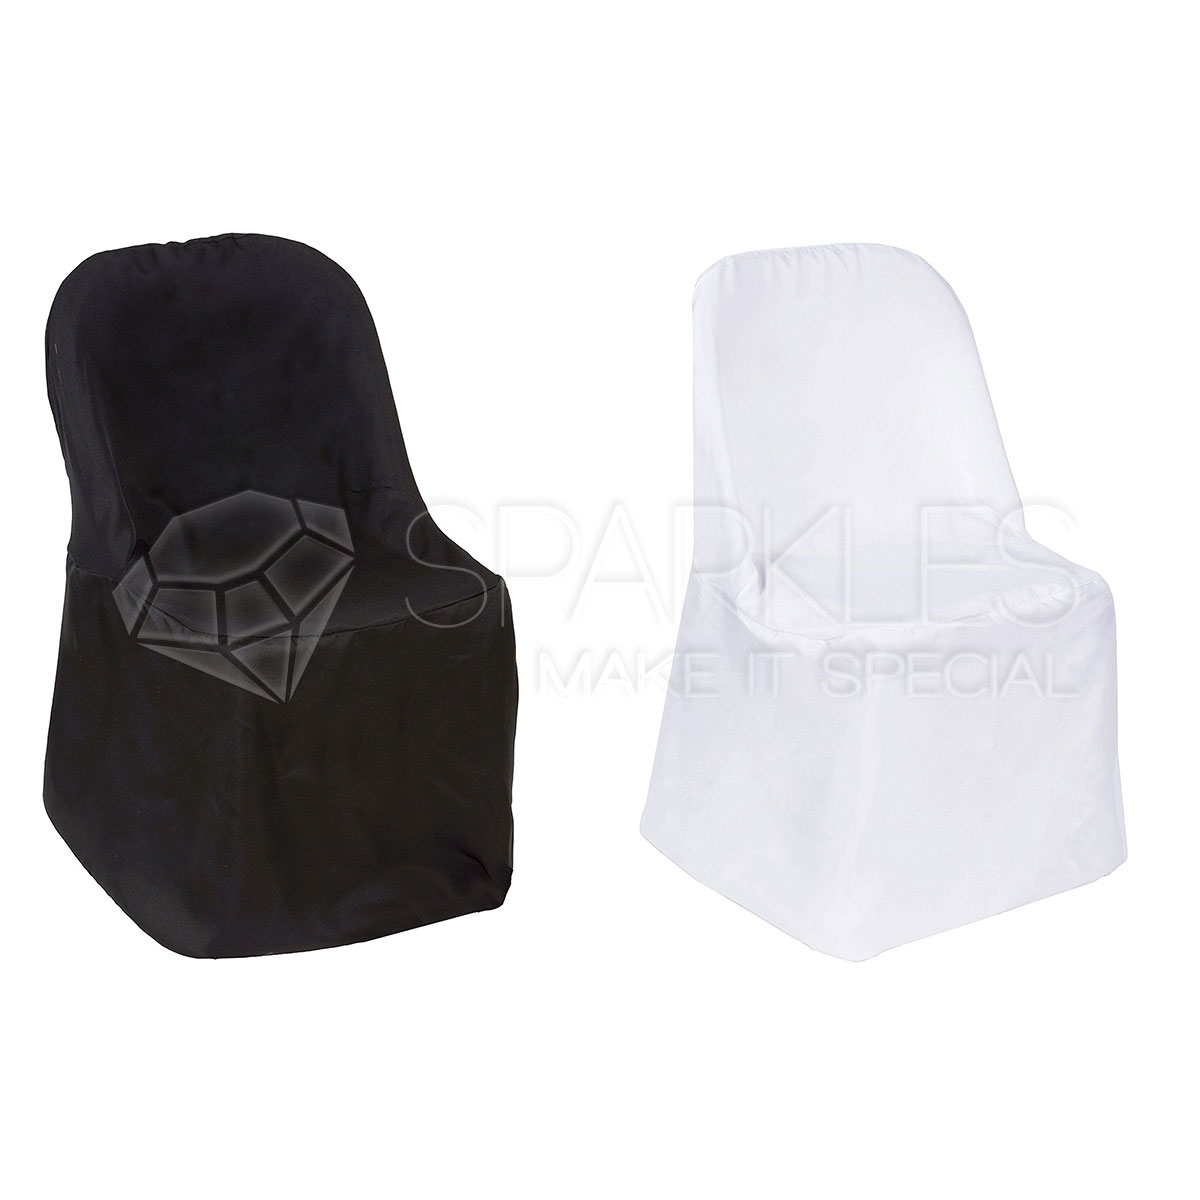 Astounding Details About Polyester Black White Or Ivory Folding Chair Covers Wedding Reception Machost Co Dining Chair Design Ideas Machostcouk